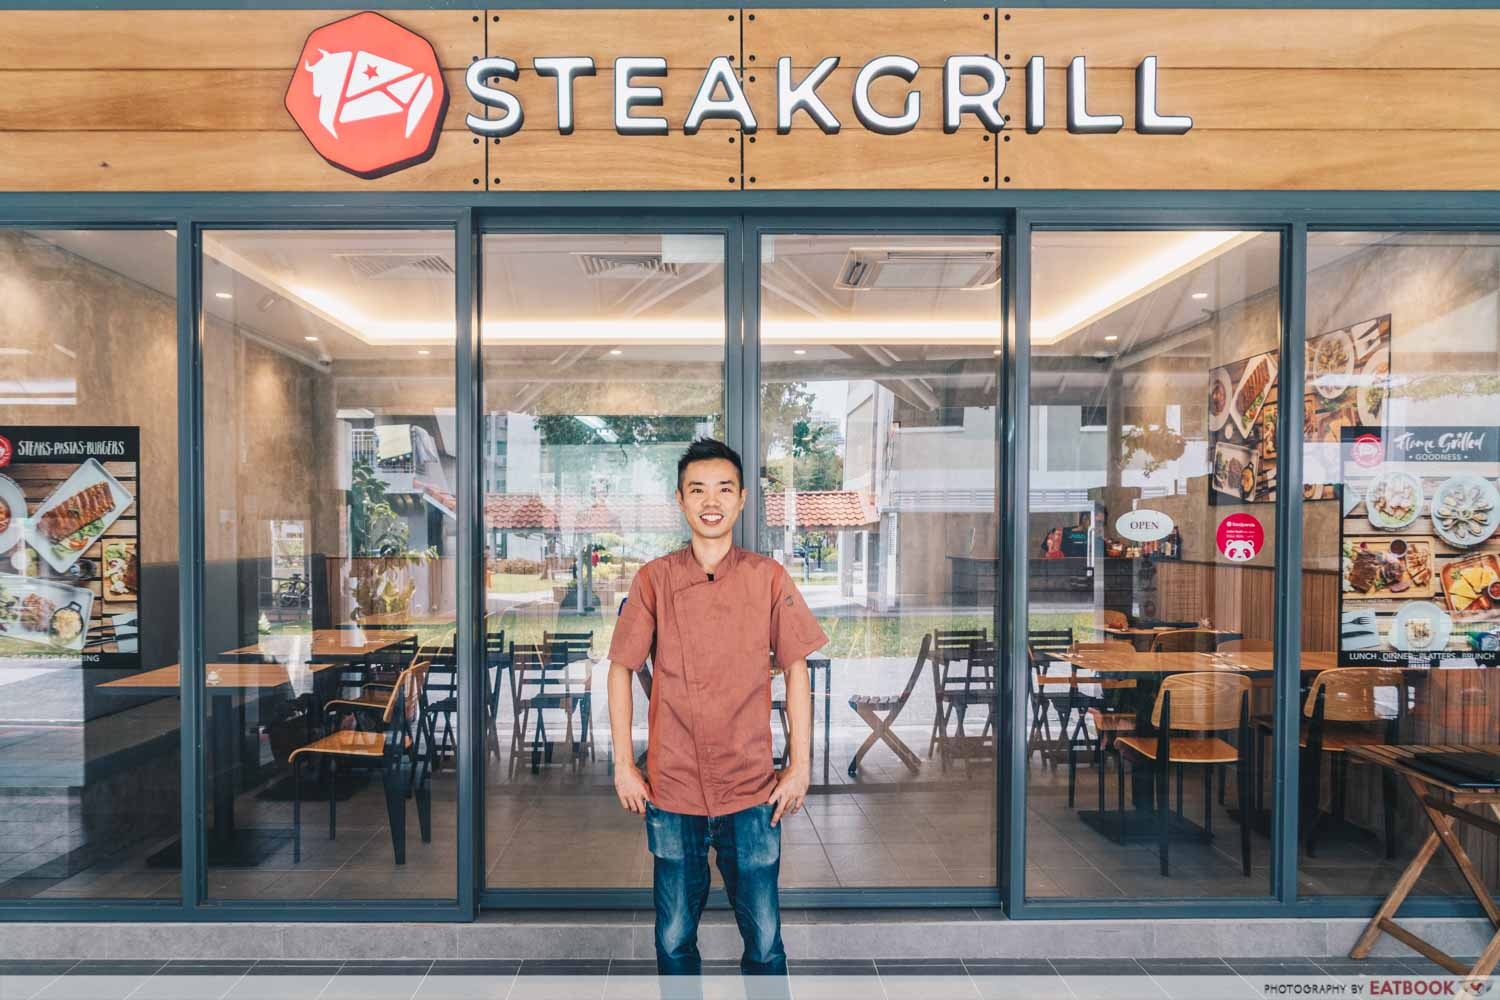 SteakGrill - Owner